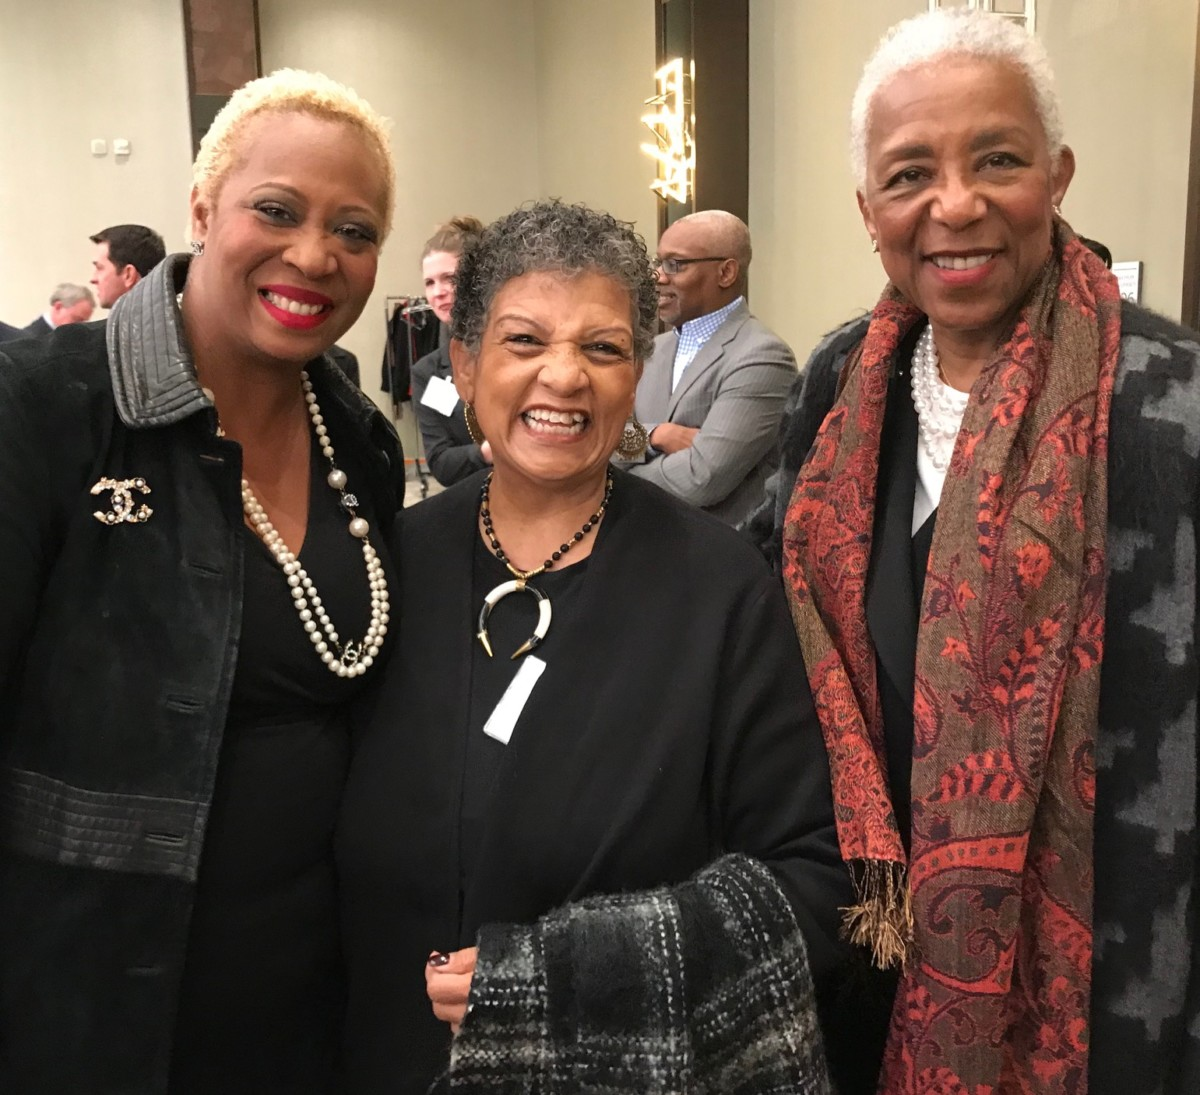 Former MARTA CEO and General Manager Beverly Scott (center) with guests at the State of MARTA breakfast. Credit: Kelly Jordan